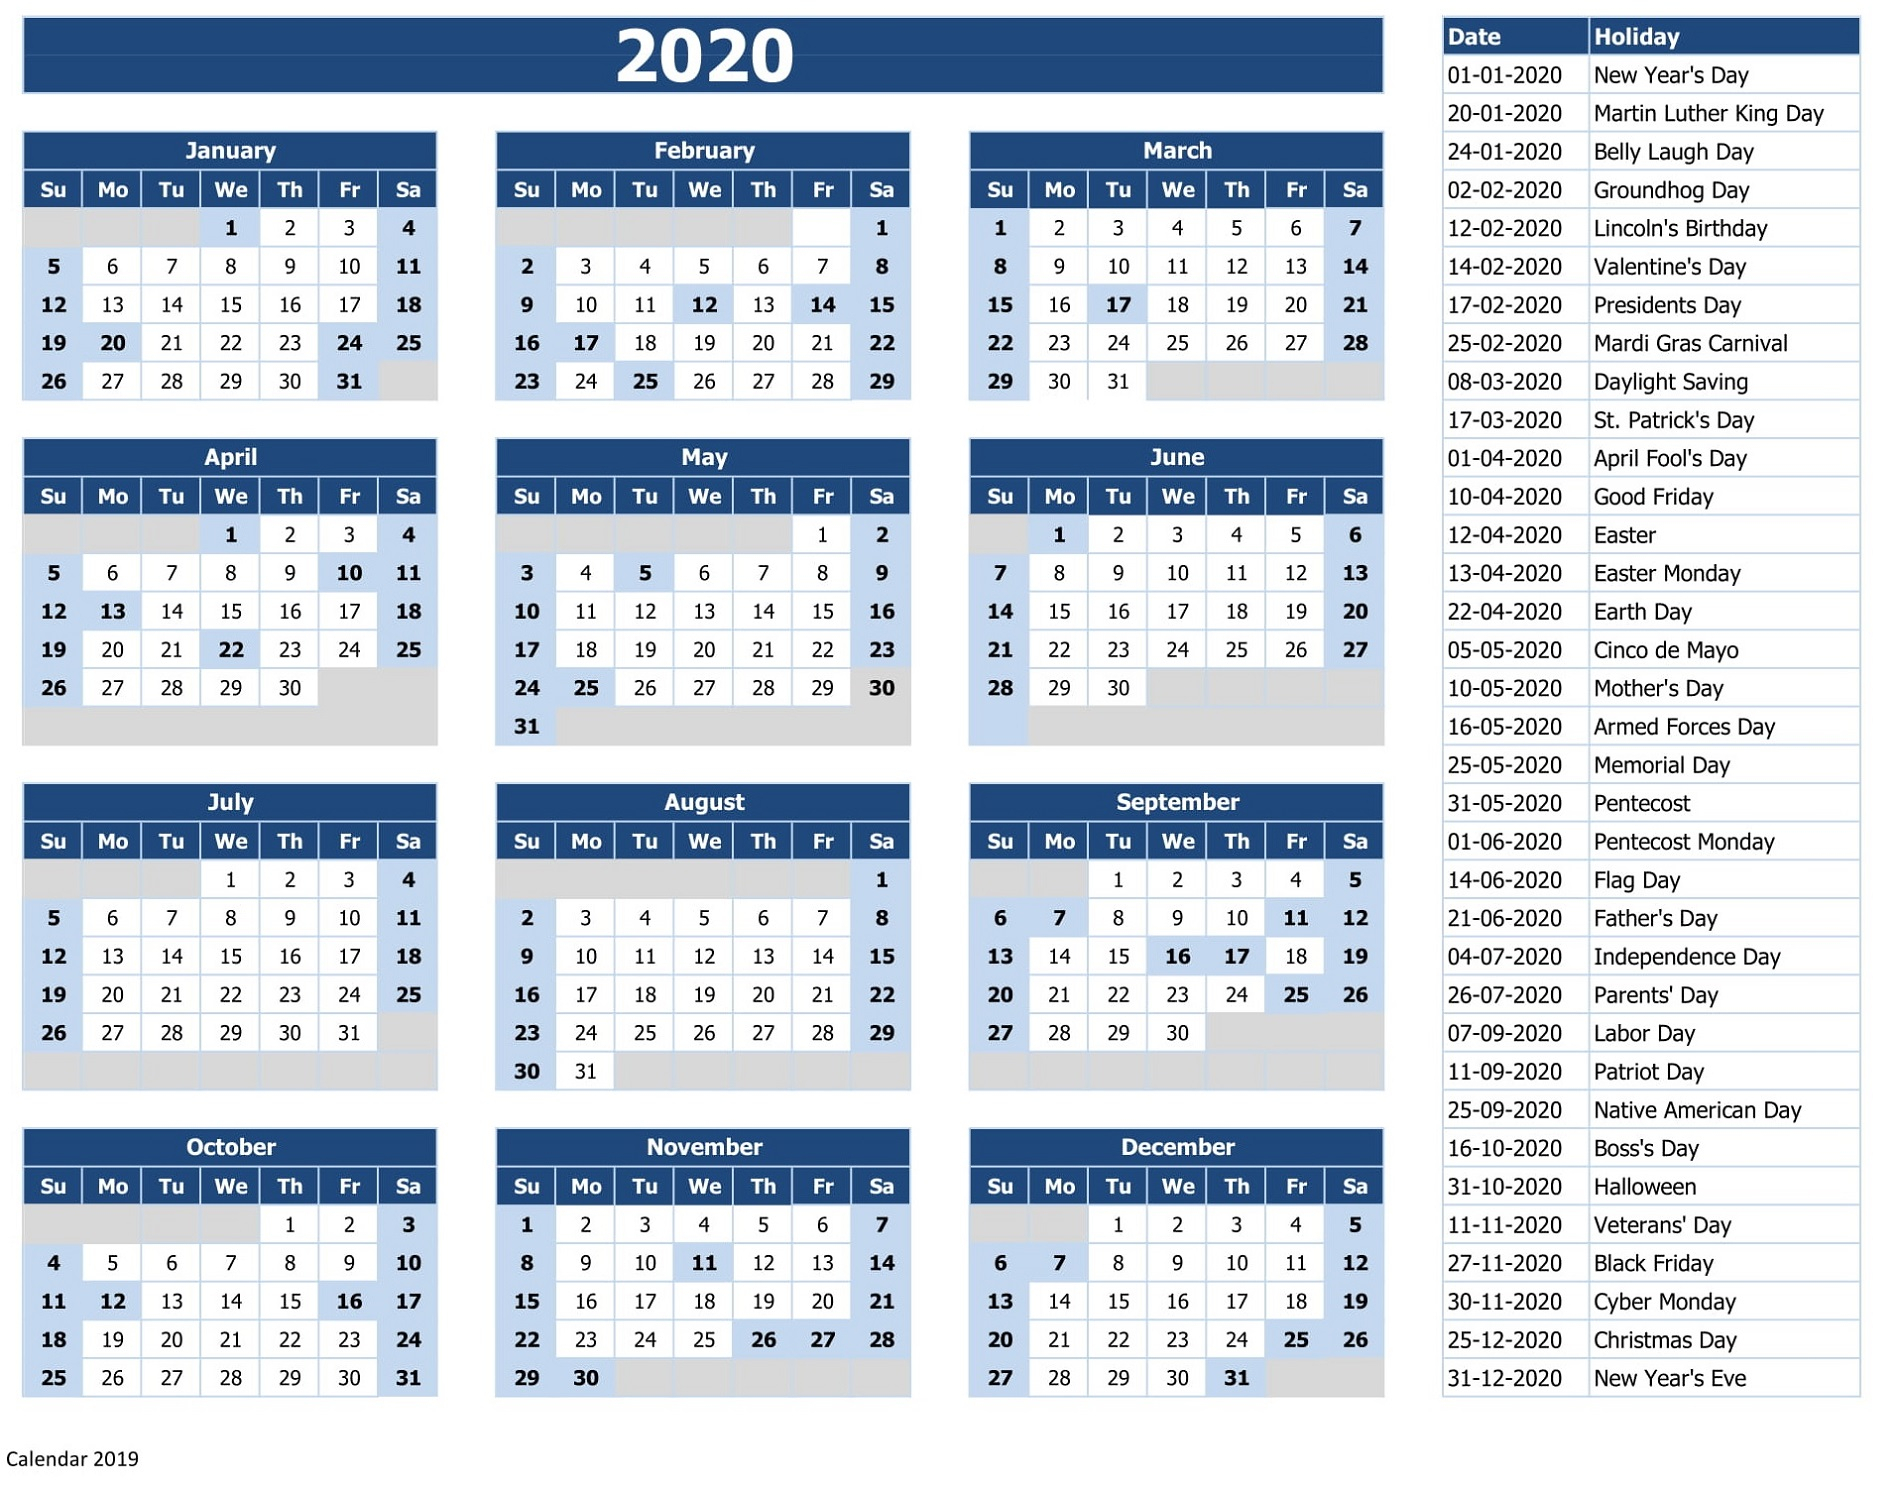 2020 Calendar Printable With Holidays And Notes | Calendar with 2020 Calendar With Holidays